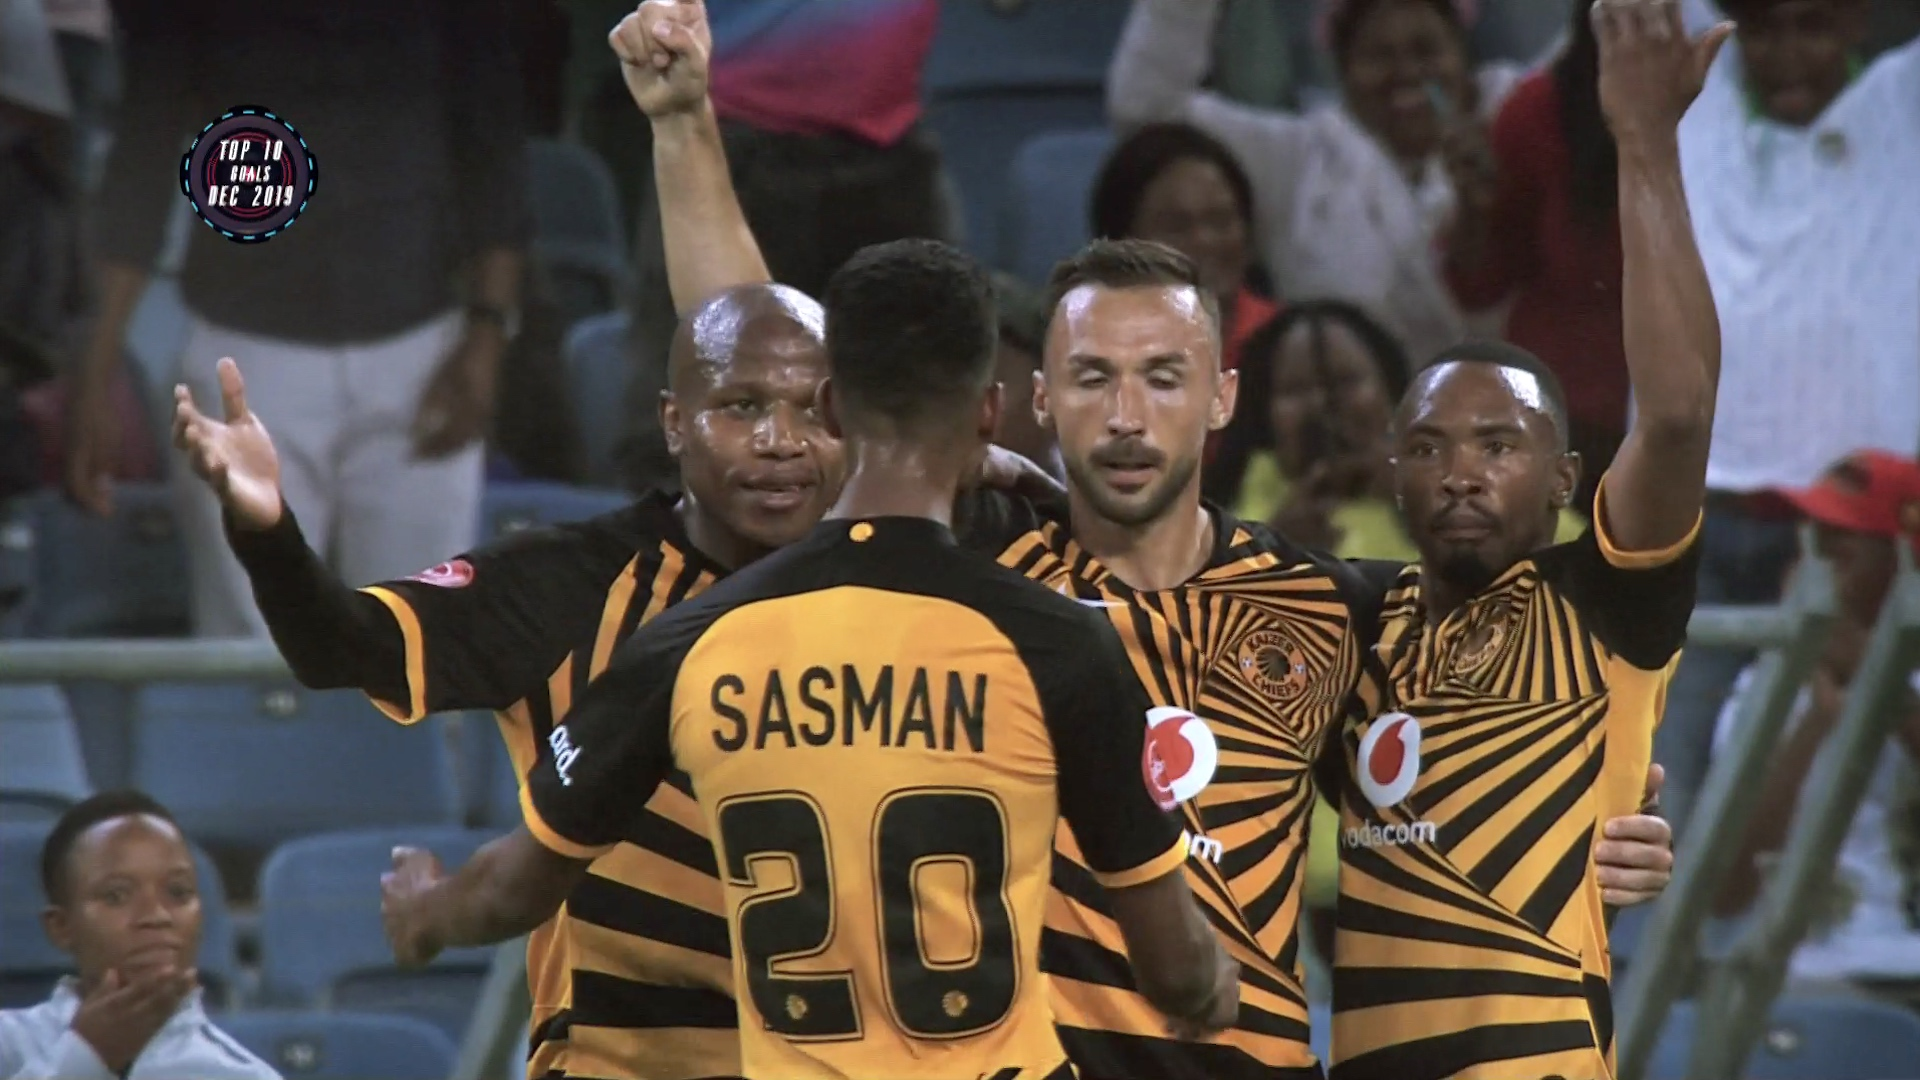 Absa Premiership | December 2019 | Top 10 Goals